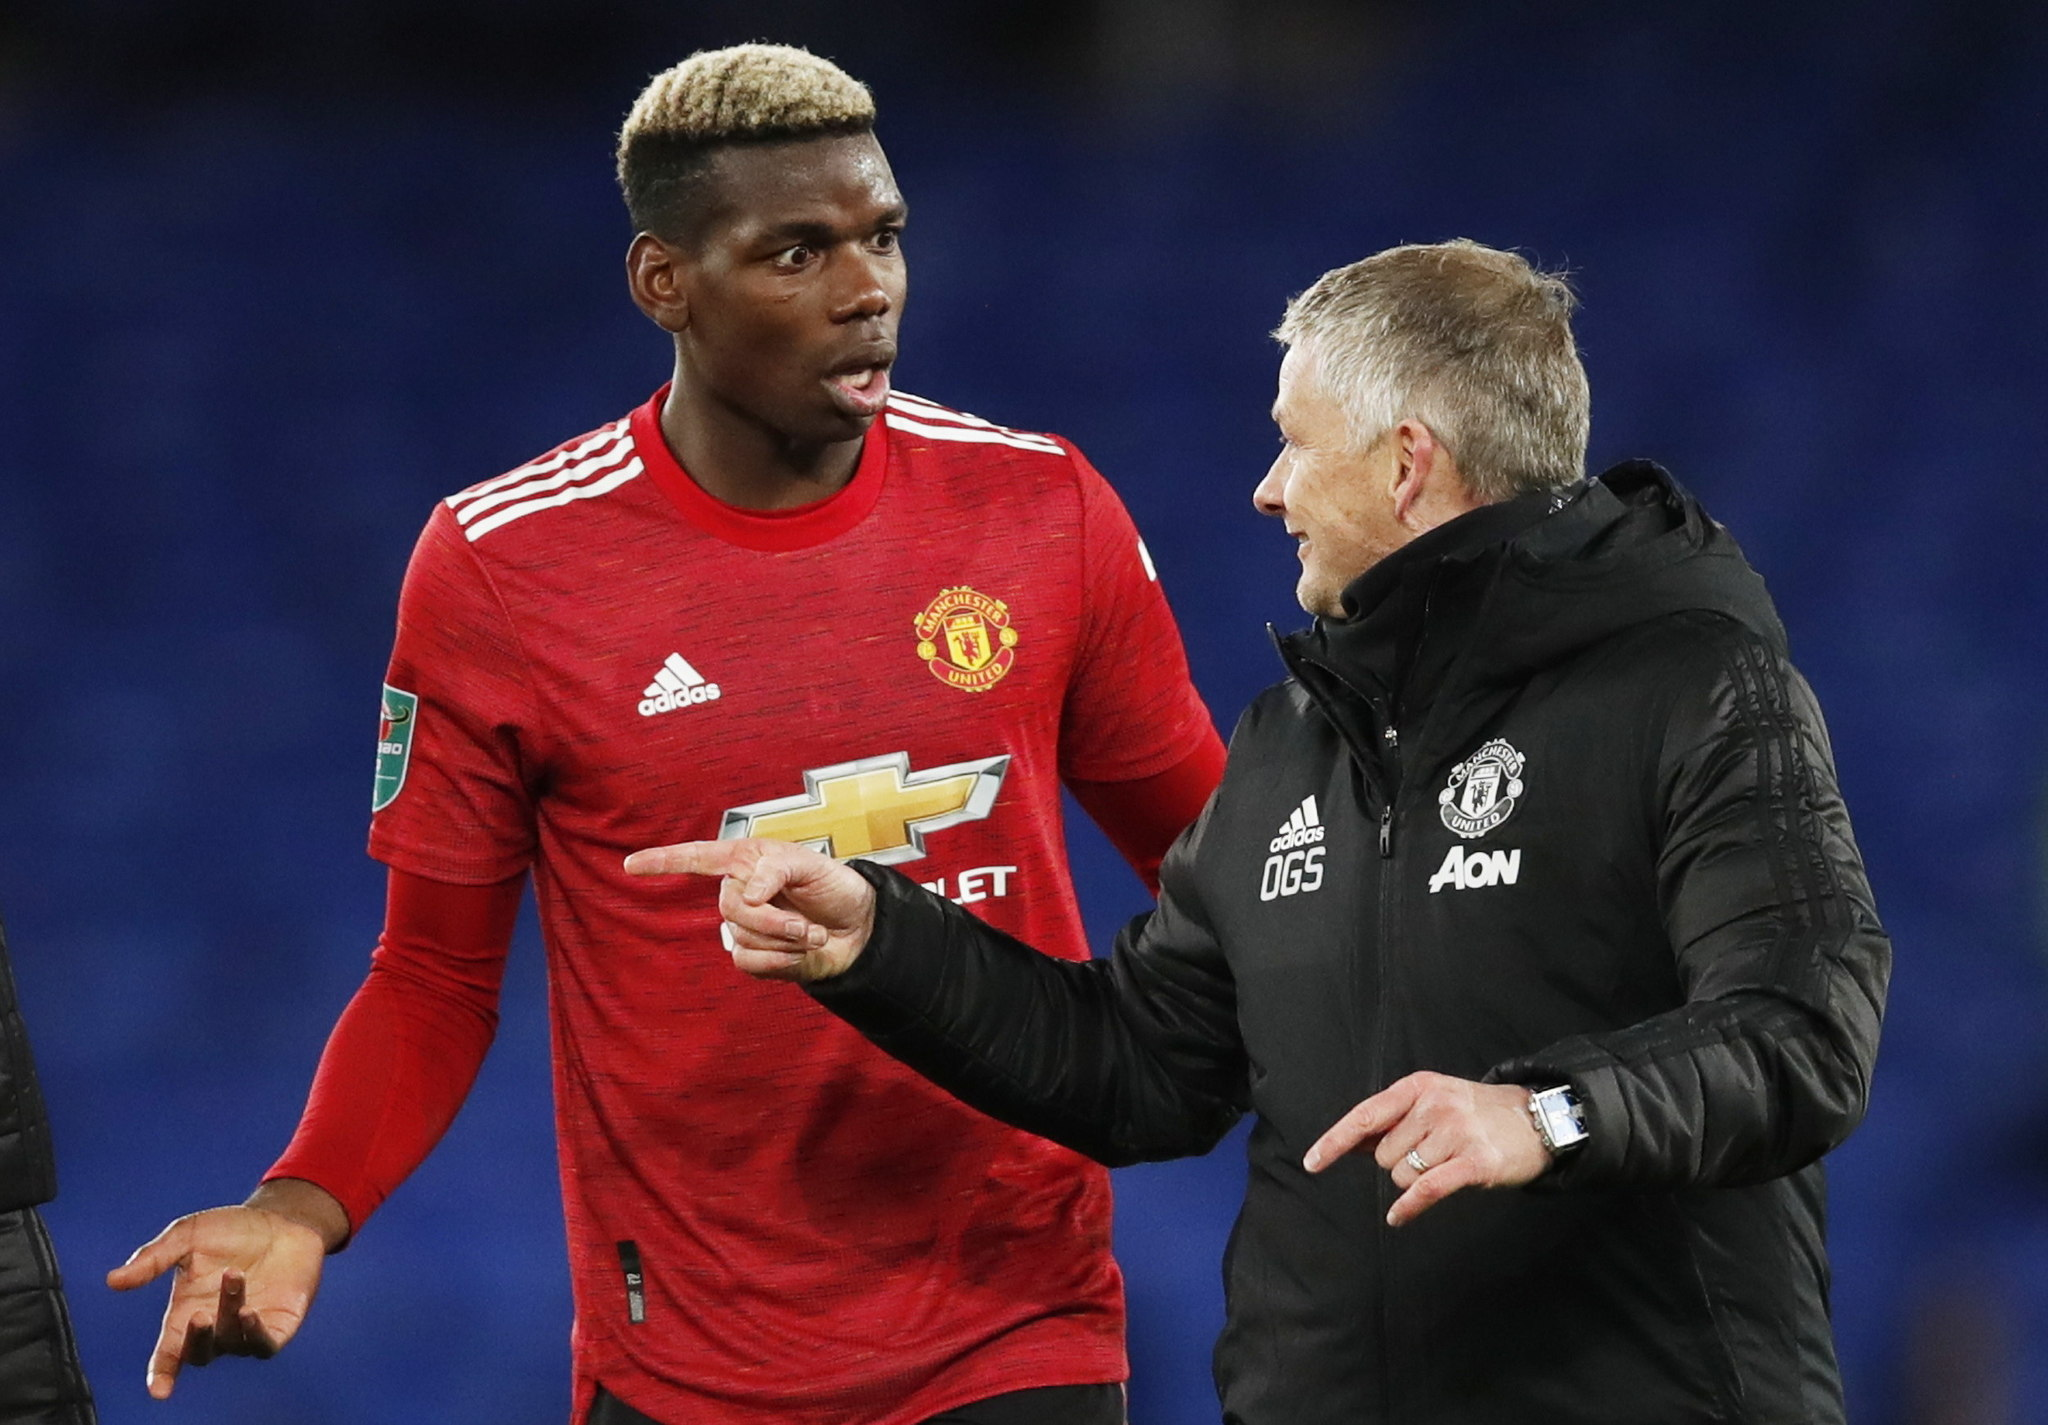 Liverpool (United Kingdom), 23/12/2020.- Manchester United manager Ole Gunnar lt;HIT gt;Solskjaer lt;/HIT gt; (R) speaks to Paul Pogba after the Carabao Cup quarter final mach between Everton and Manchester United in Liverpool, Britain, 23 December 2020. (Reino Unido) EFE/EPA/Clive Brunskill / POOL EDITORIAL USE ONLY. No use with unauthorized audio, video, data, fixture lists, club/league logos or 'live' services. Online in-match use limited to 120 images, no video emulation. No use in betting, games or single club/league/player publications